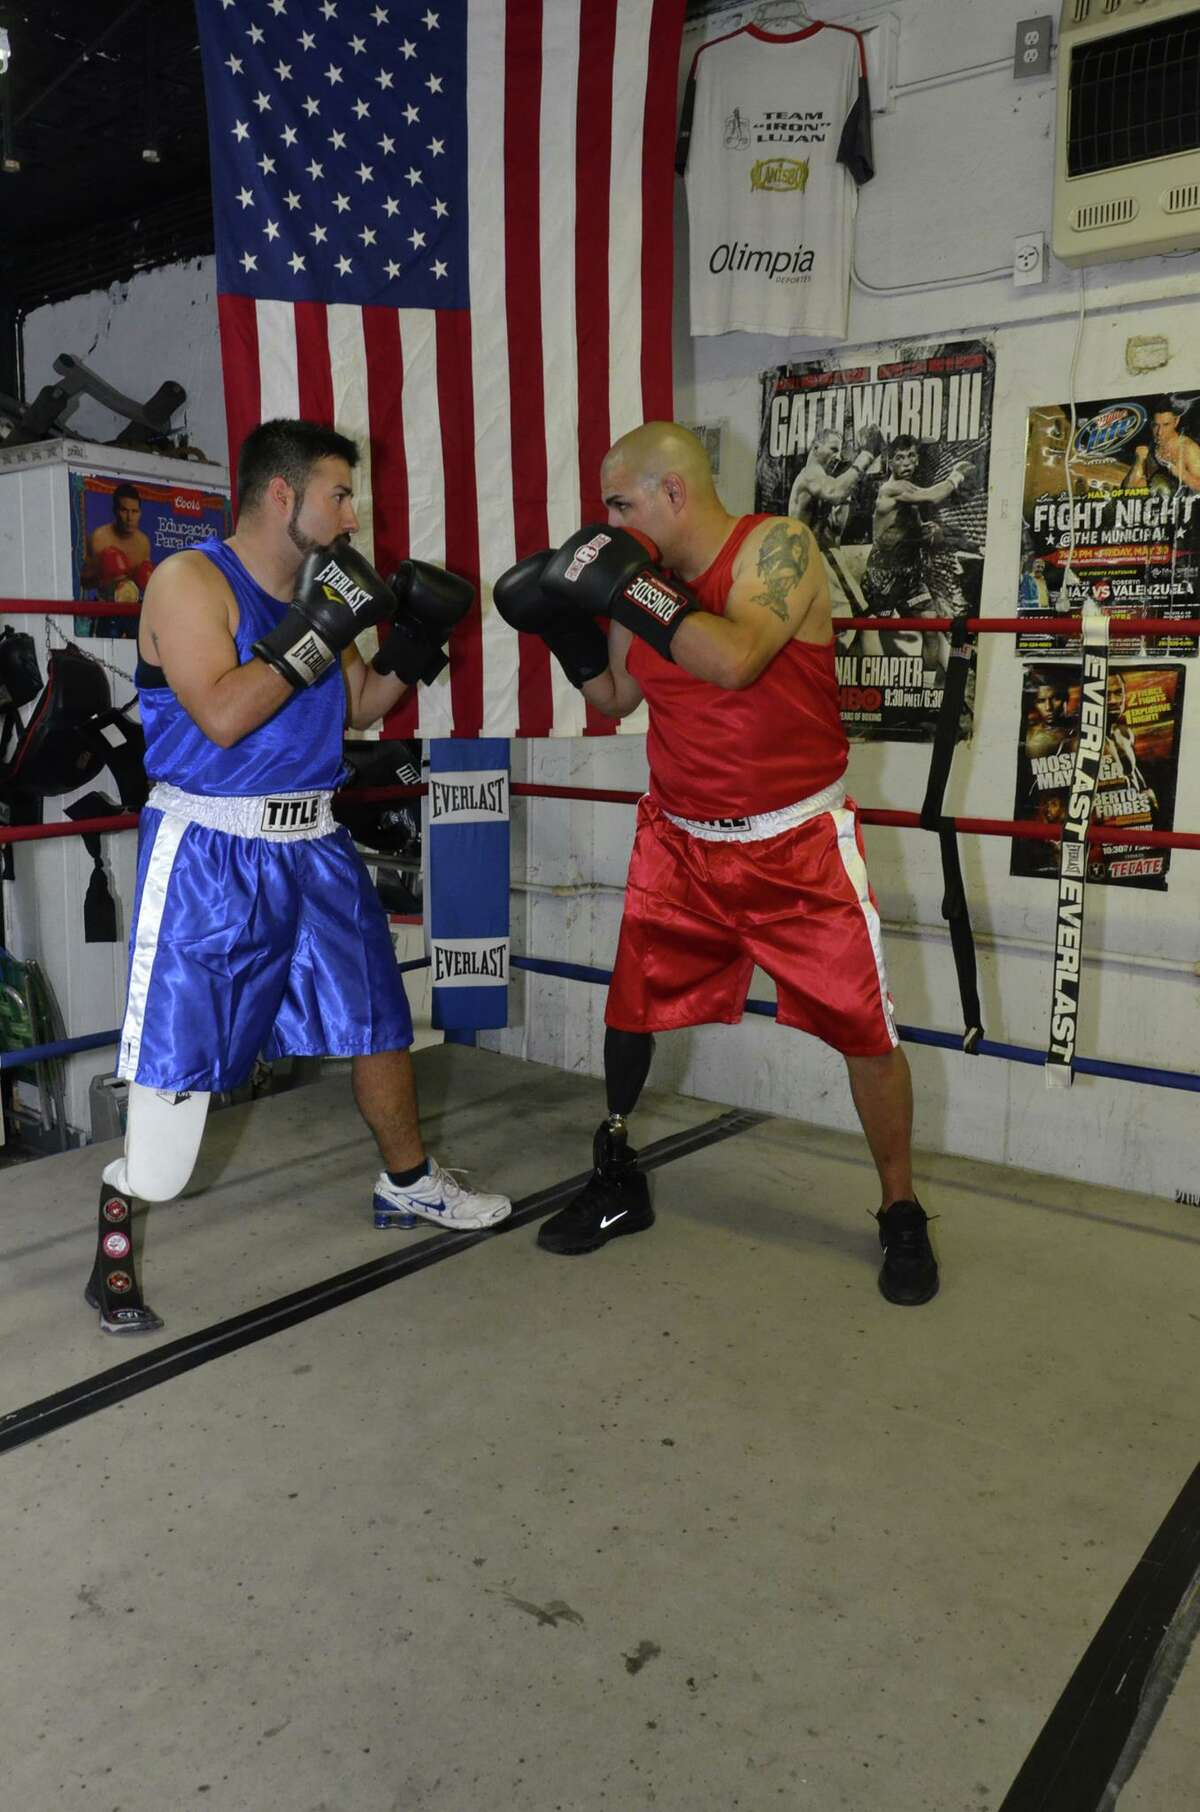 Lower-limb amputee fighters from the National Amputee Boxing Association in San Antonio square up in the ring. The group is the only sanctioned boxing association for amputees in the country.